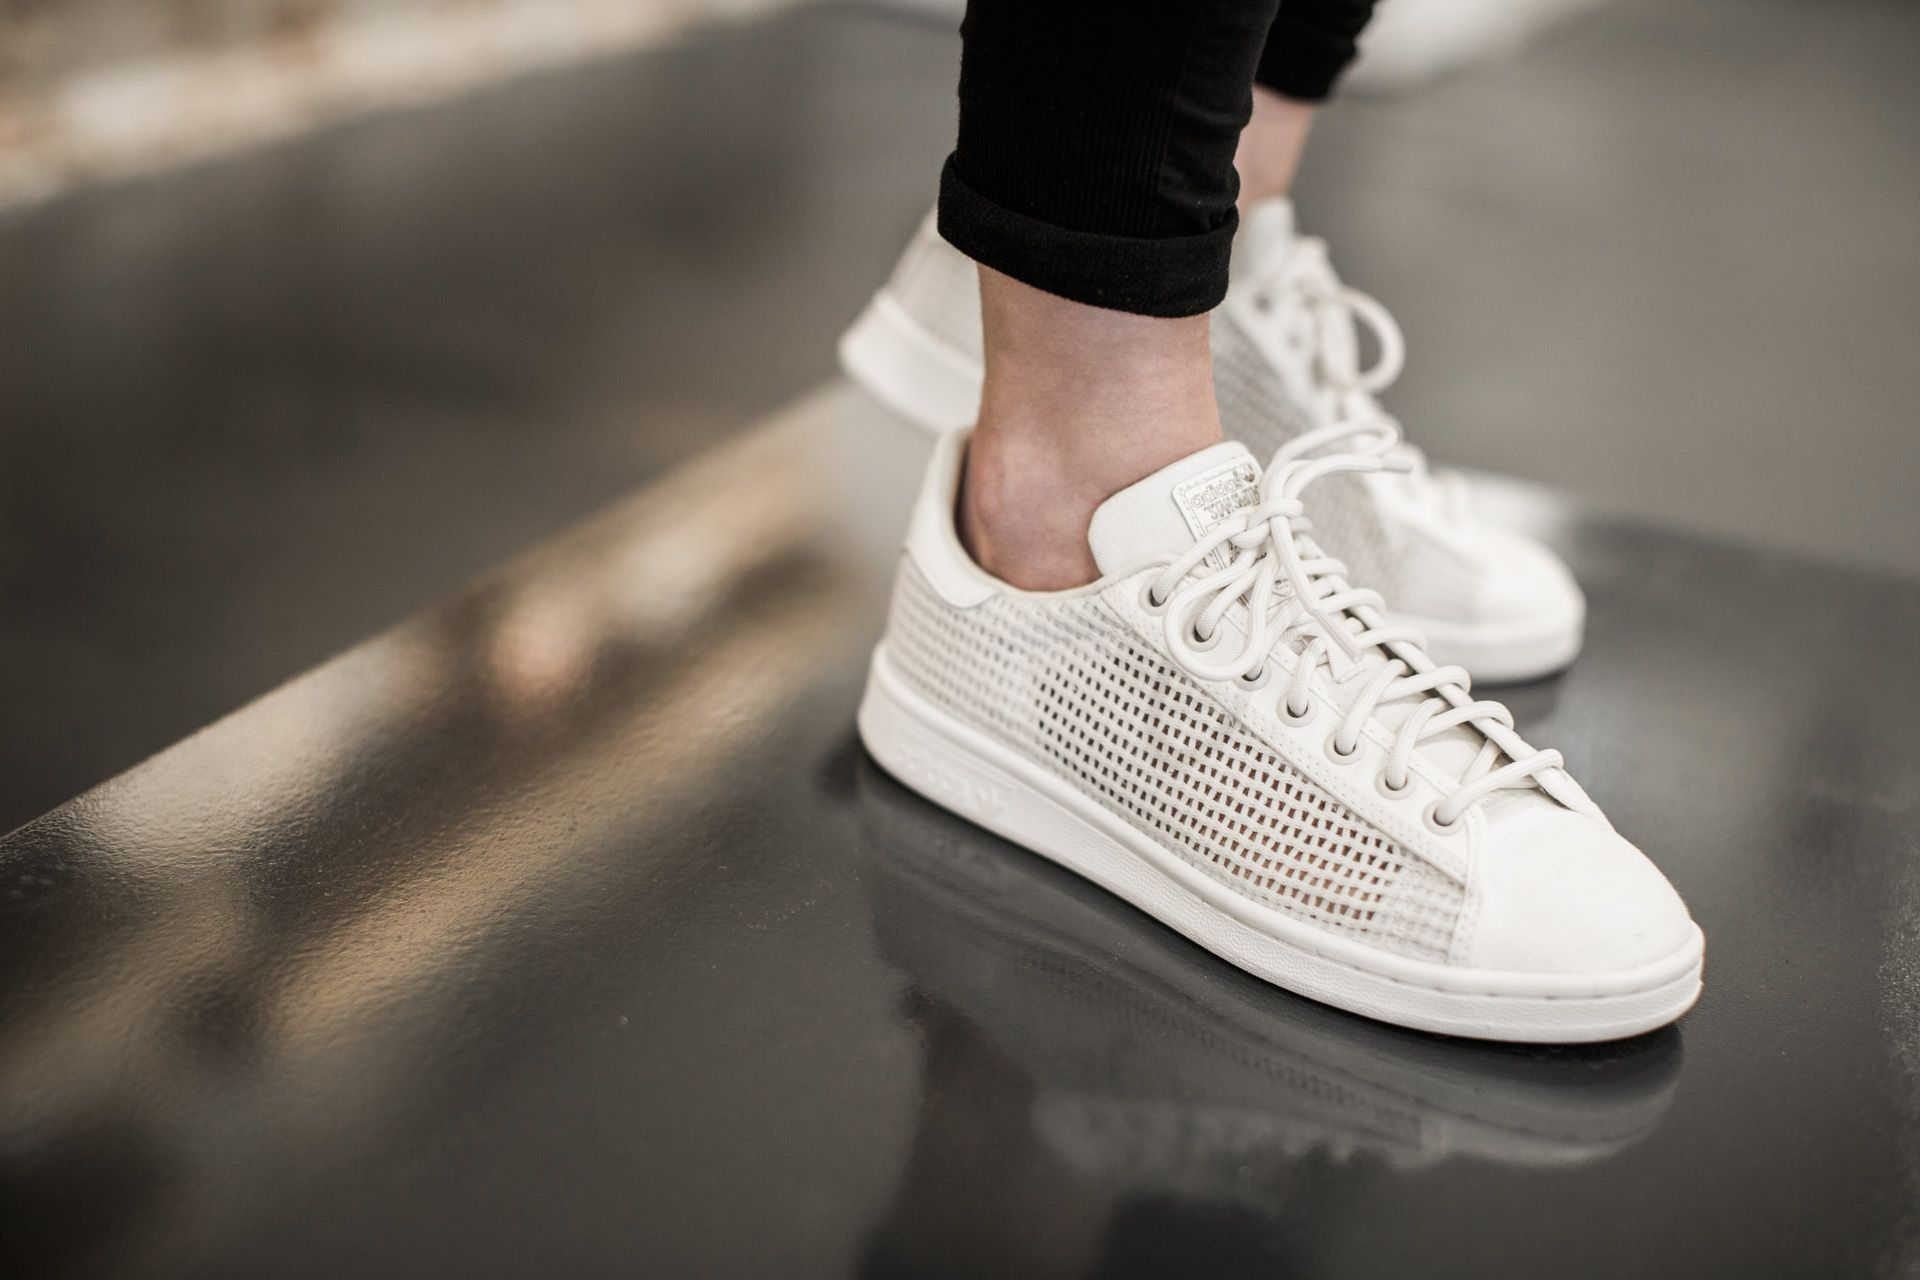 uk availability f8c23 0043e ADIDAS ORIGINALS STAN SMITH CWHITE CWHITE CWHITE available at www.tint- footwear.com adidas-originals-stan-smith-b24363 adidas originals stan smith   ...